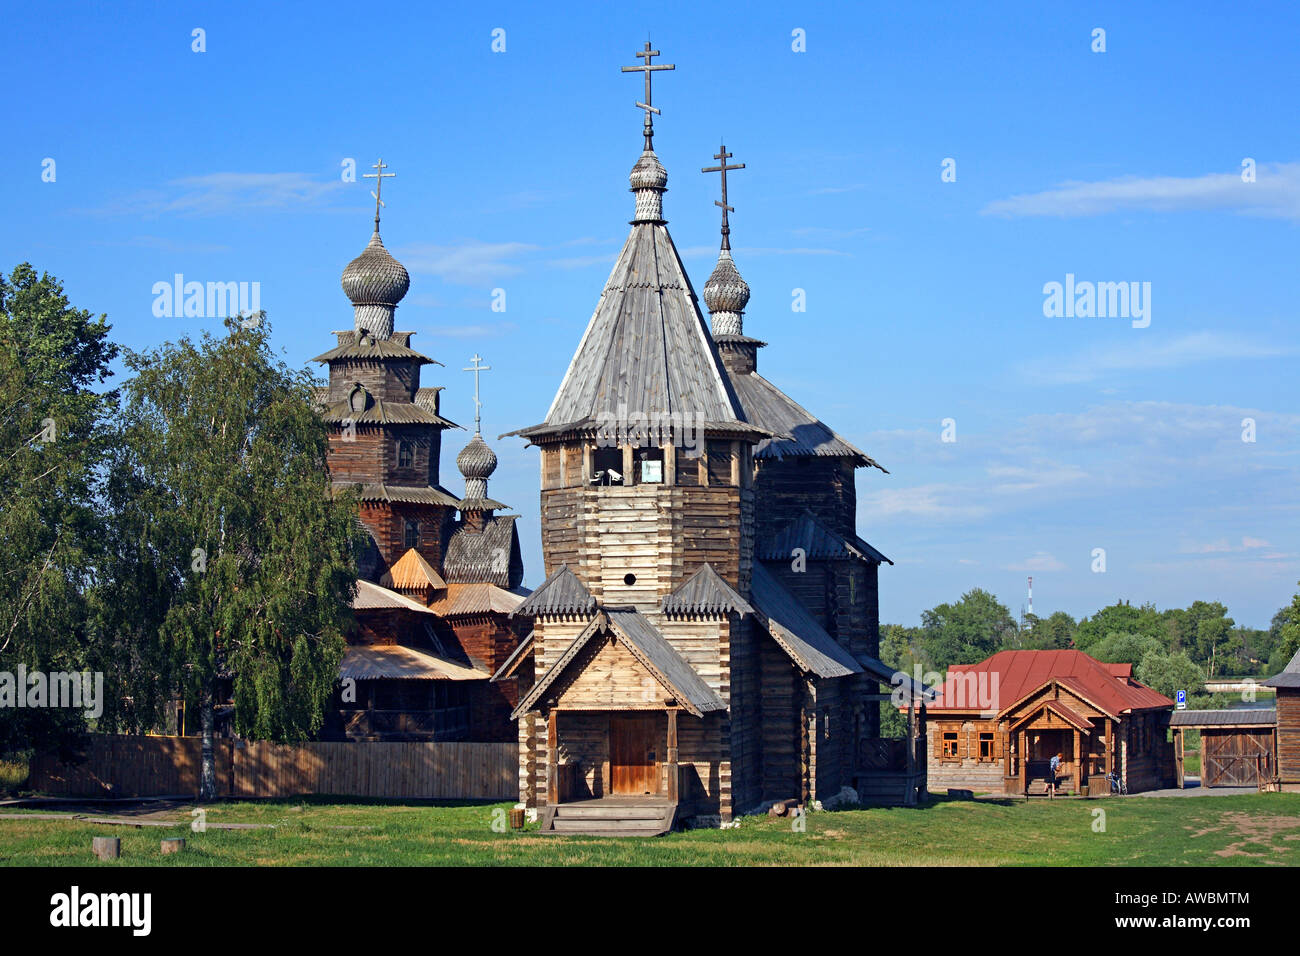 Suzdal - Museum of Wooden Architecture or the Ghost of the Dmitrievsky Pechora Monastery 52